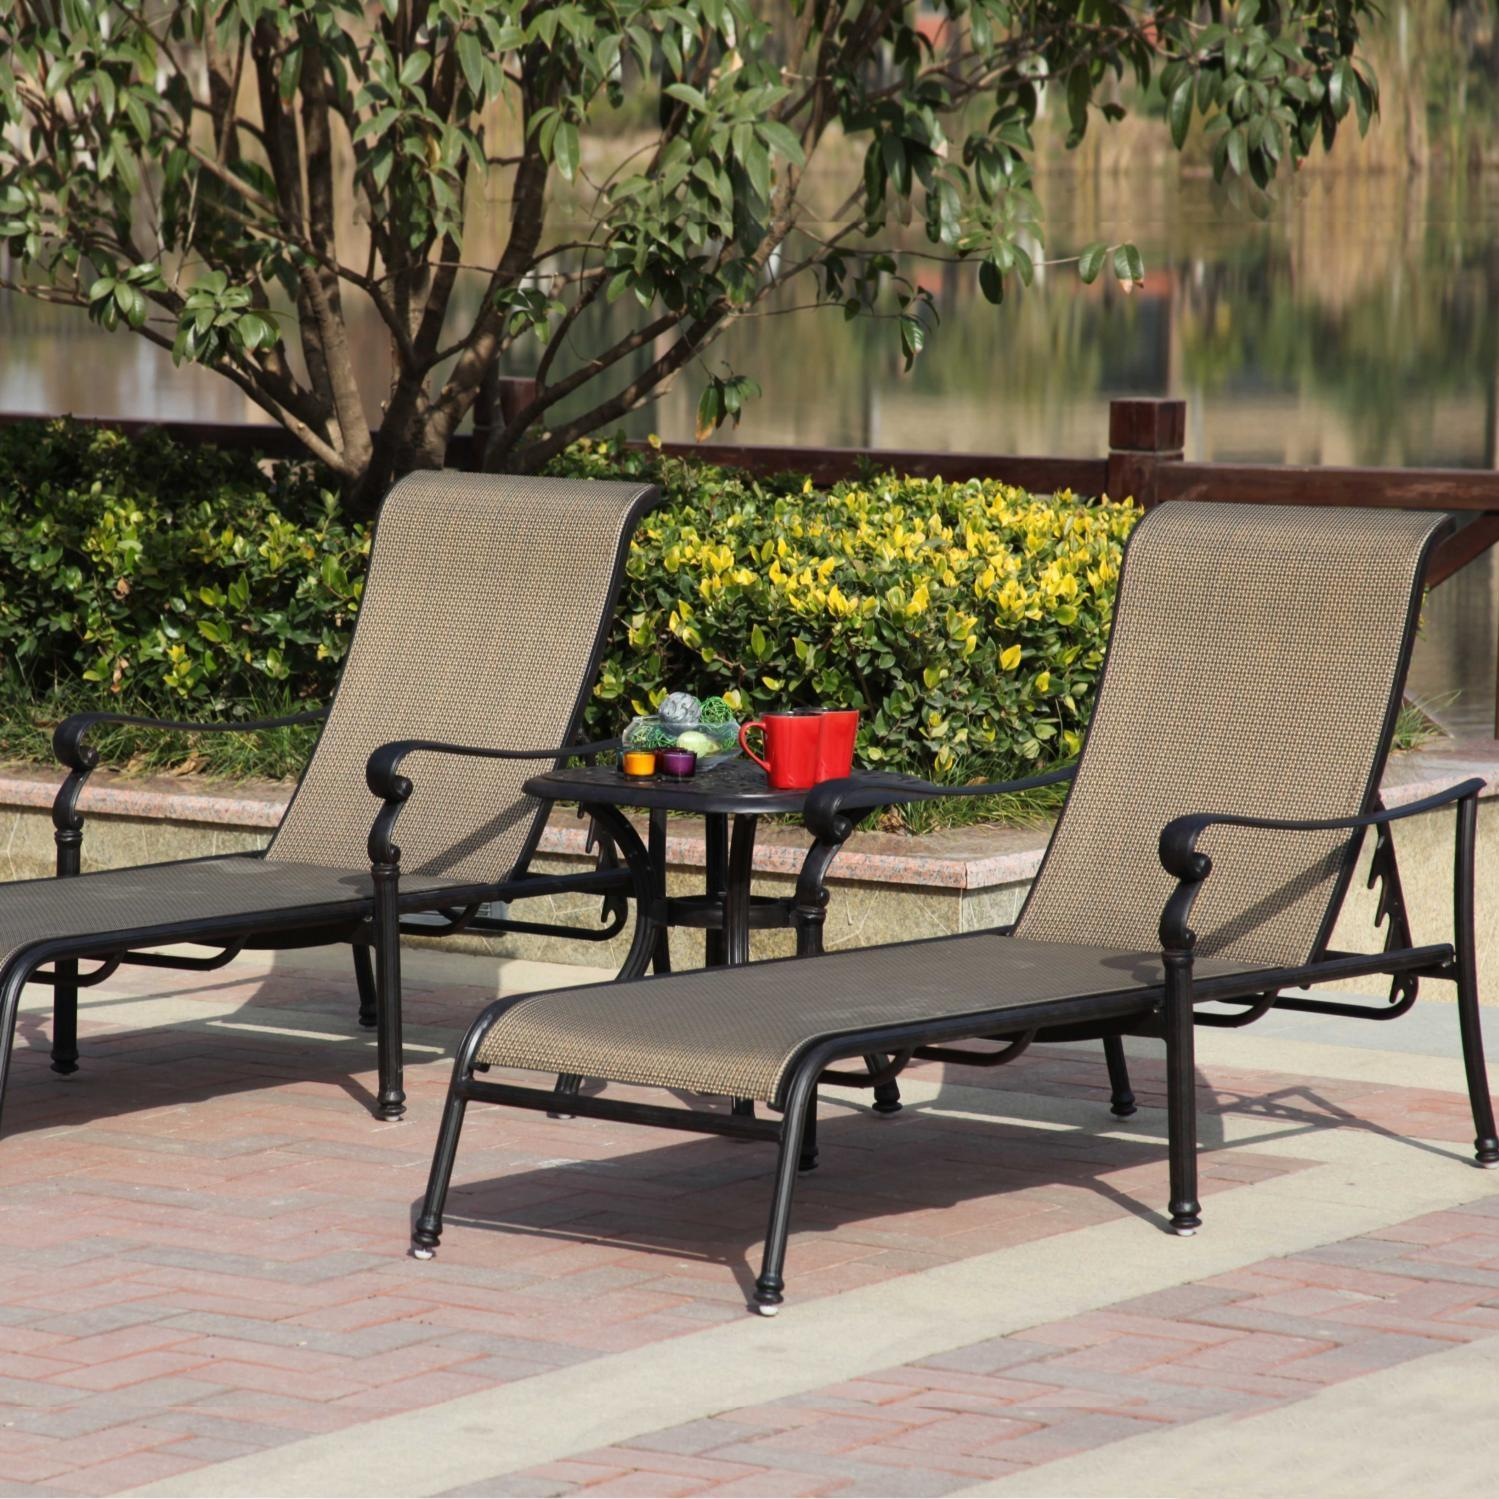 Premium Outdoor Chaise Lounge Sets The Outdoor Store